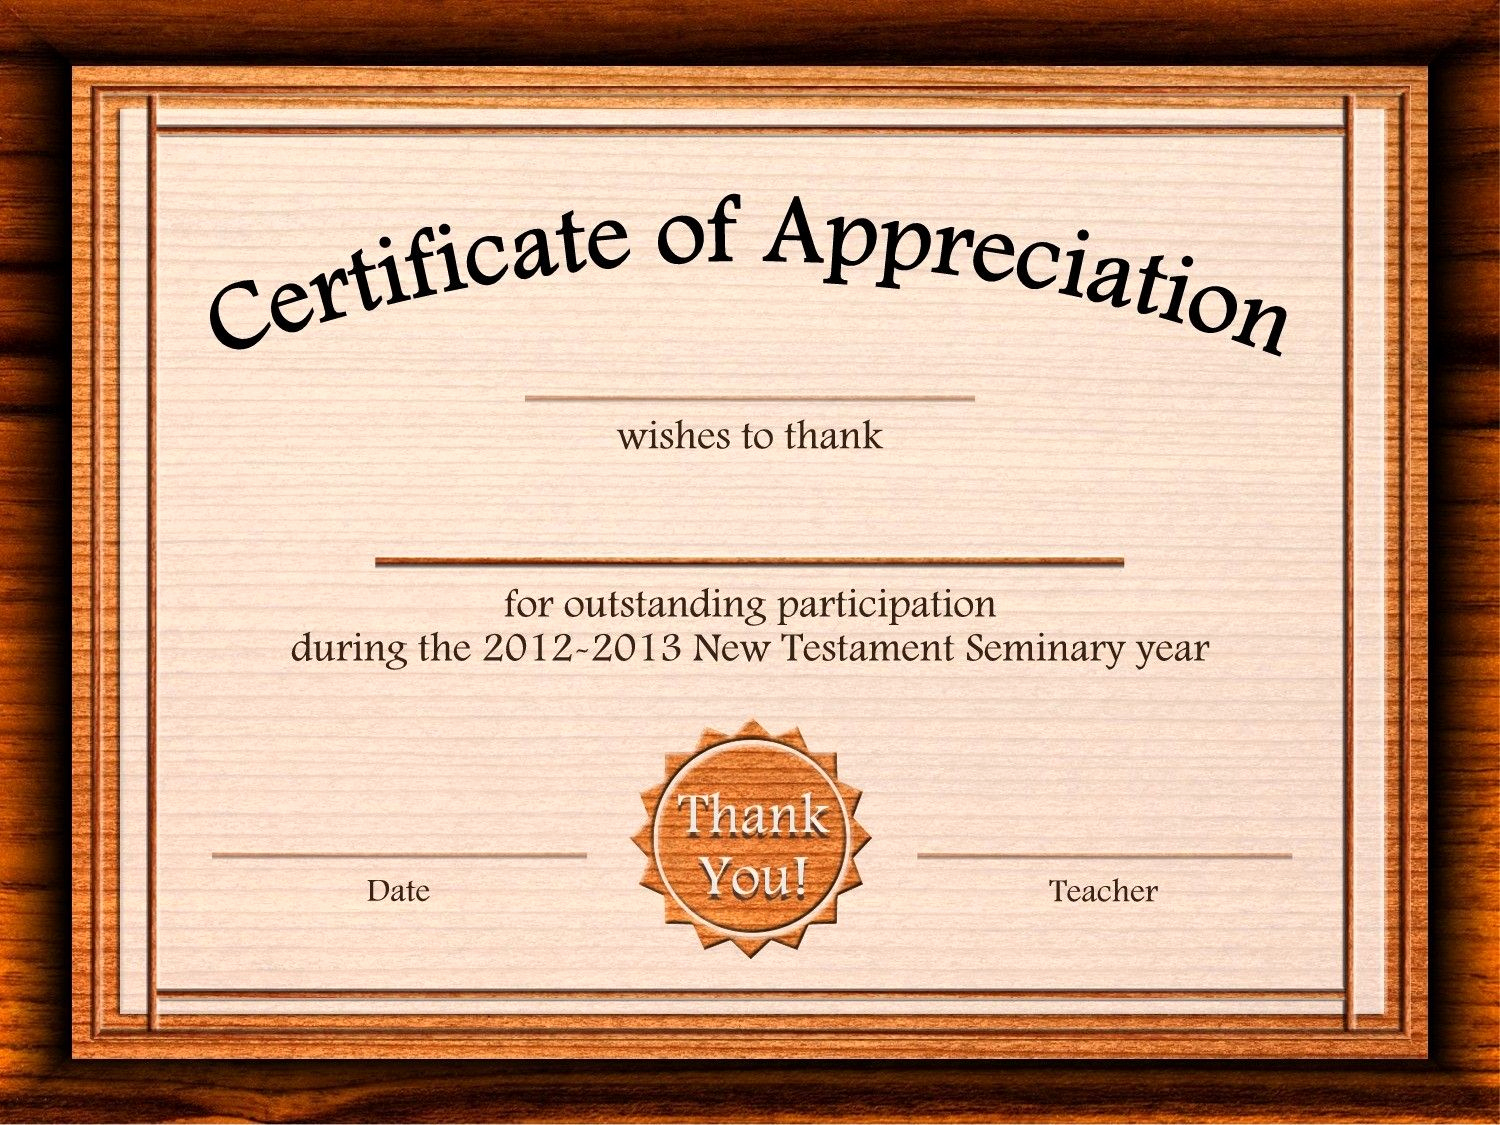 Certificate Templates for Word Elegant Free Certificate Appreciation Templates for Word